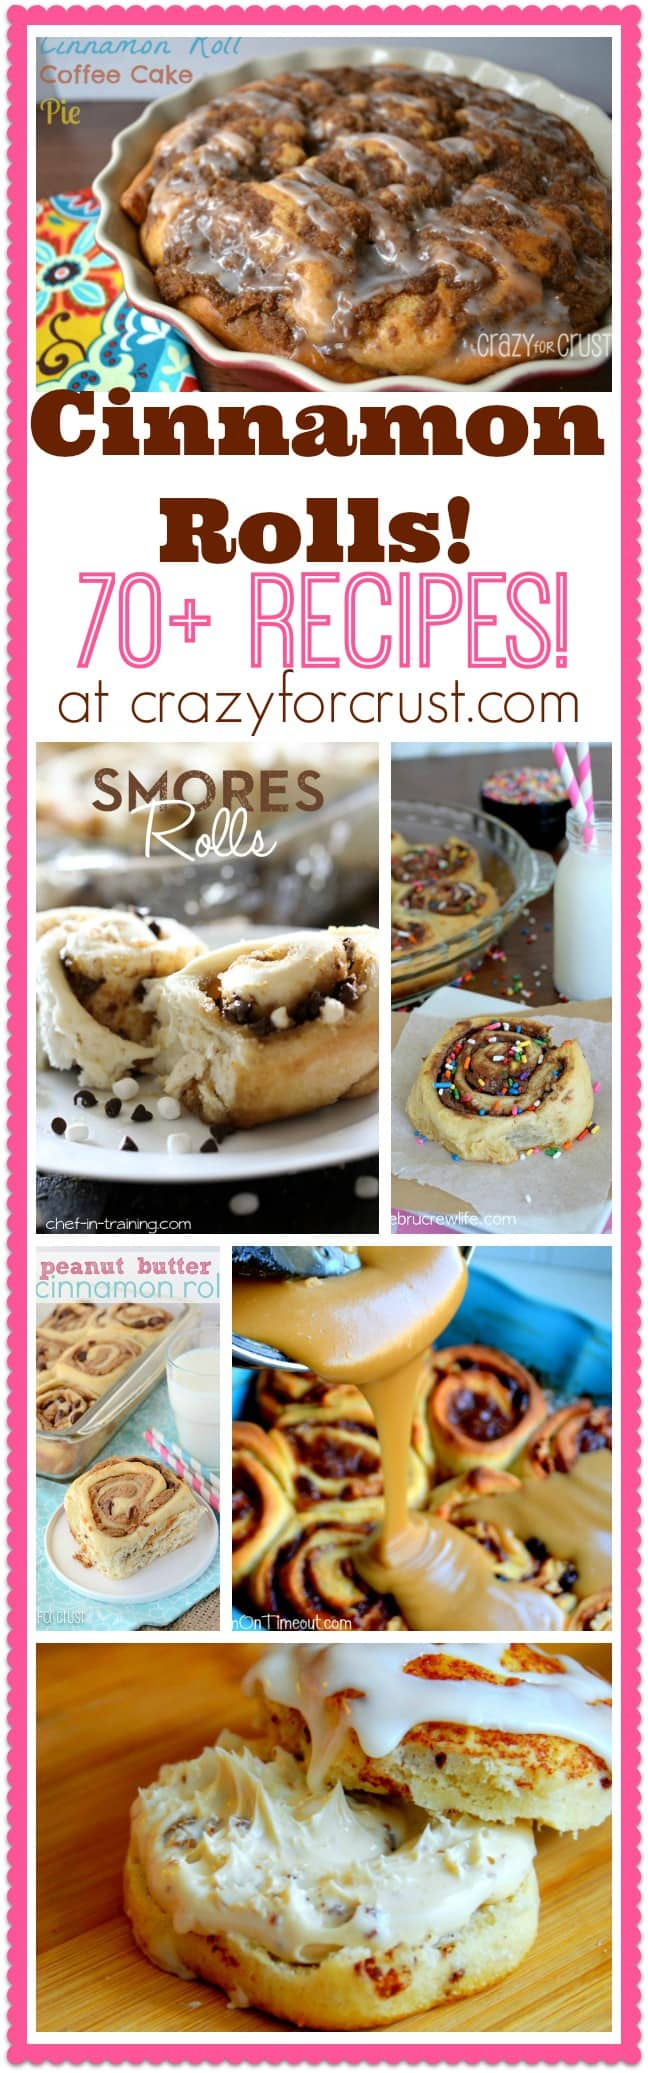 Over 70 Cinnamon Roll Recipes! | crazyforcrust.com